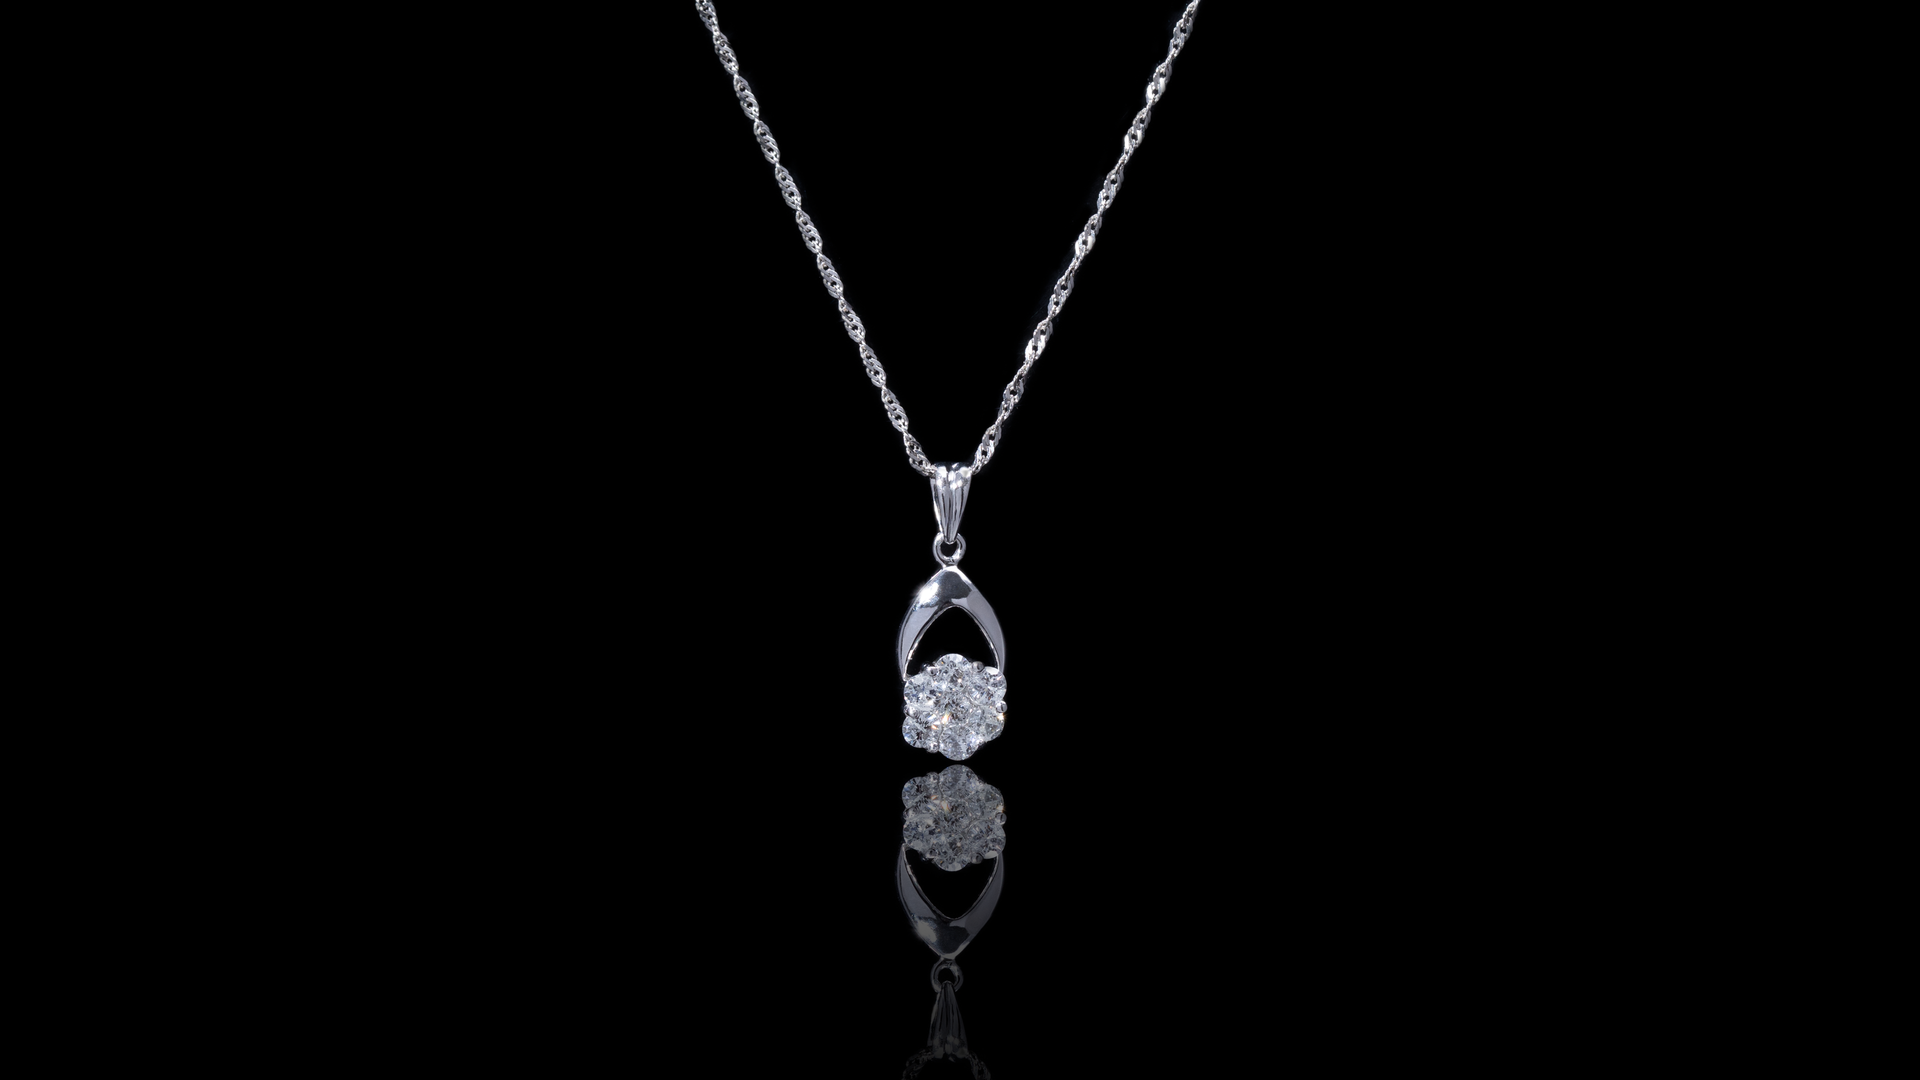 [SPECIAL] 10k/14k White Gold Honeycomb Diamond Necklace